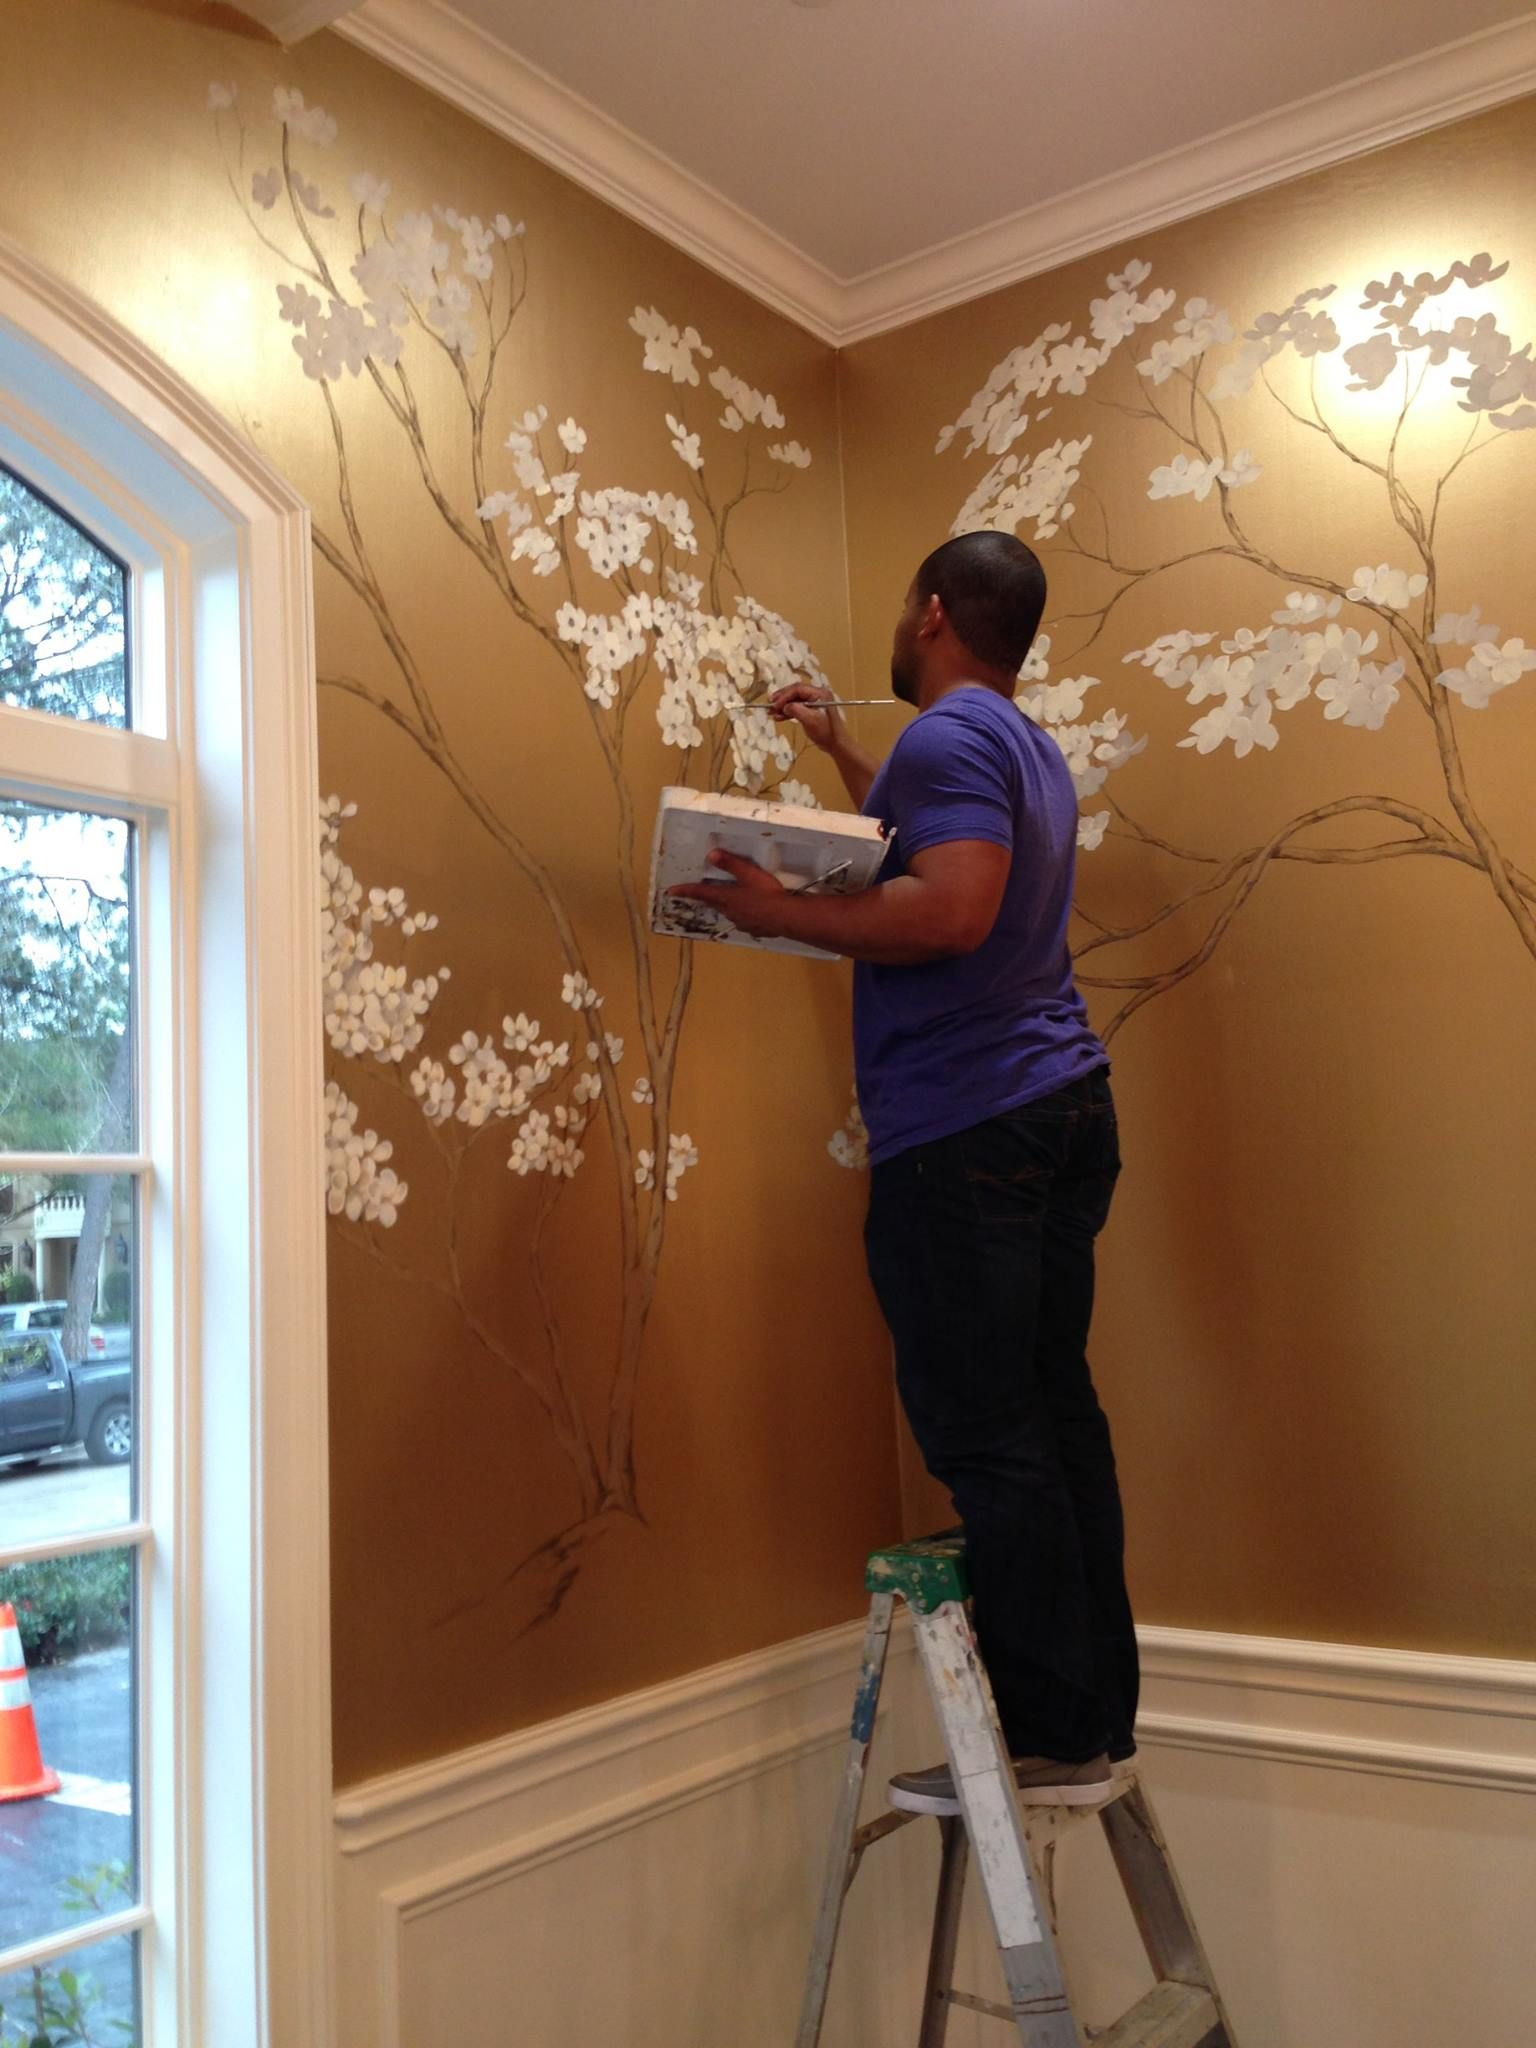 hand painted cherry blossoms on metallic gold wall pinteres hand painted cherry blossoms on metallic gold wall reminds me very much of my hand painted mural